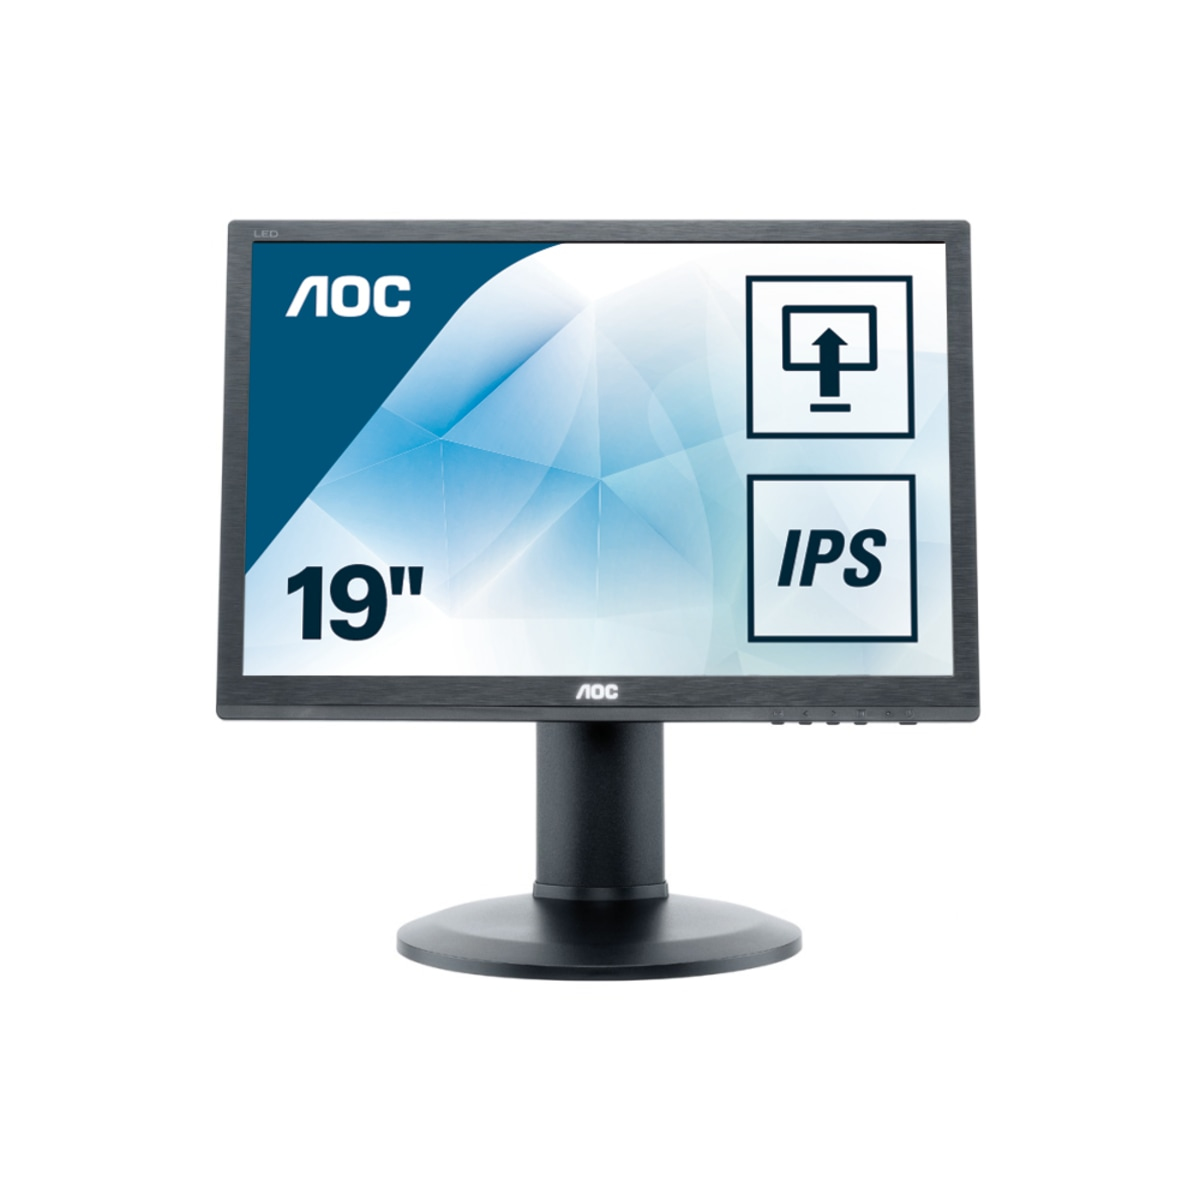 Monitor LCD 19in I960prda 178/178 1280x1024@75hz 1000:1 250cd/m2 6ms D-sub DVI Pivot